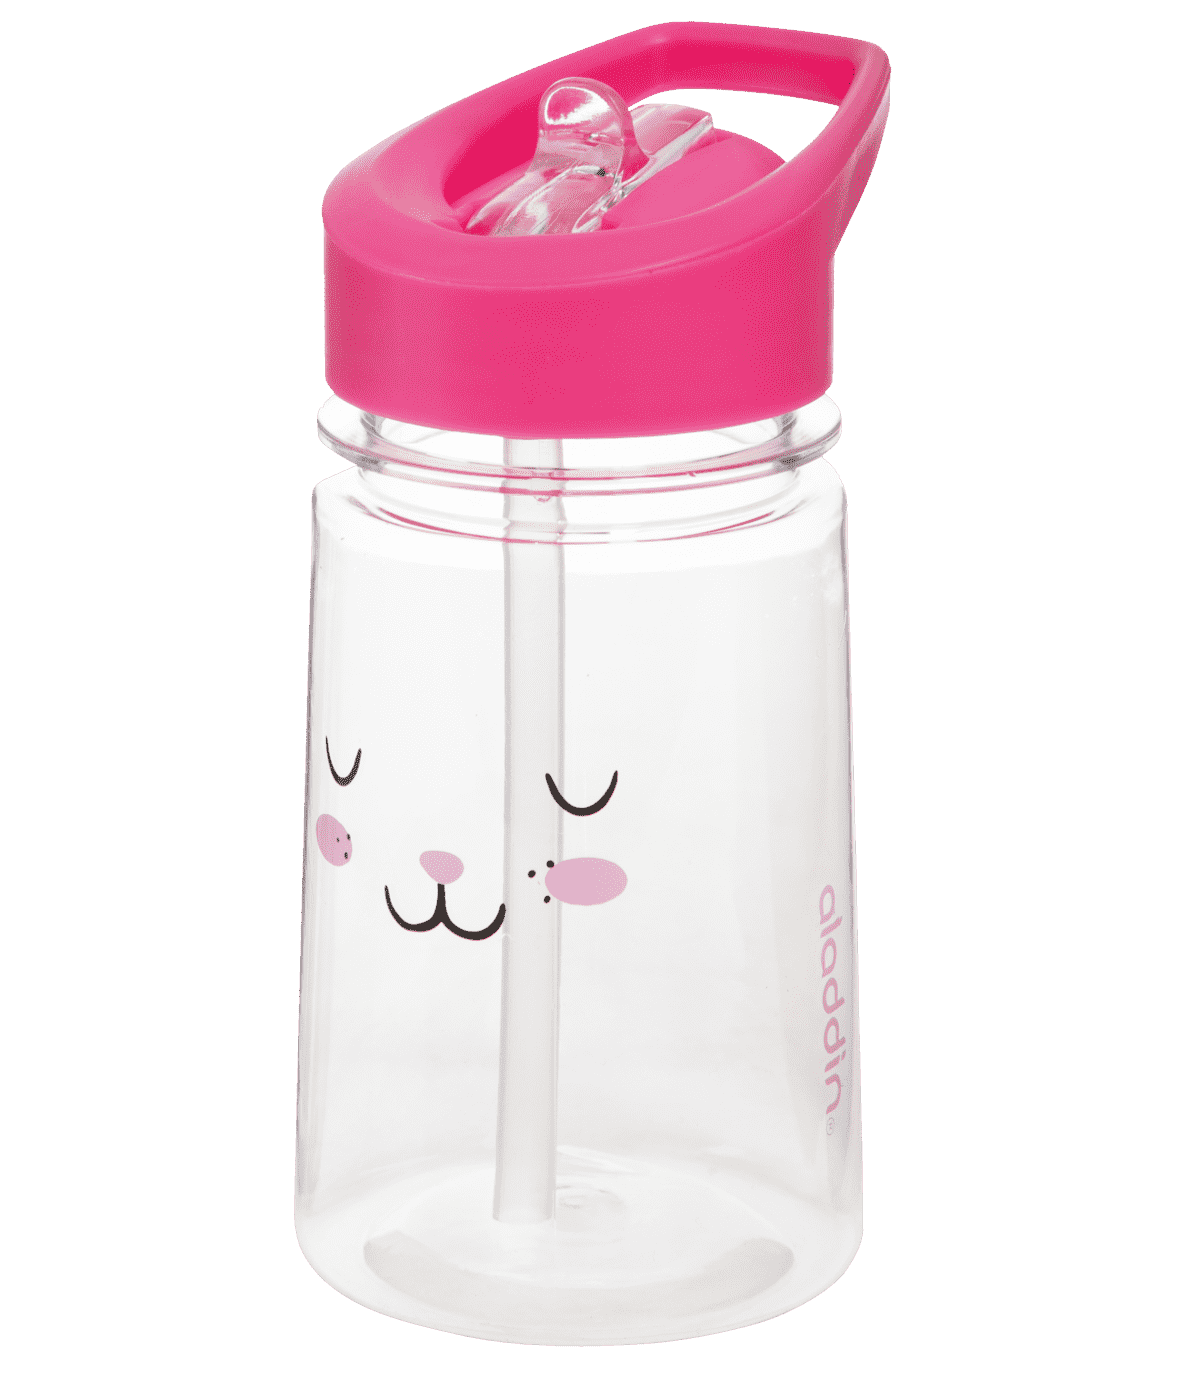 ALADDIN  34909 Zoo Kids Bunny Trinkflasche in Rosa | 06939236349093